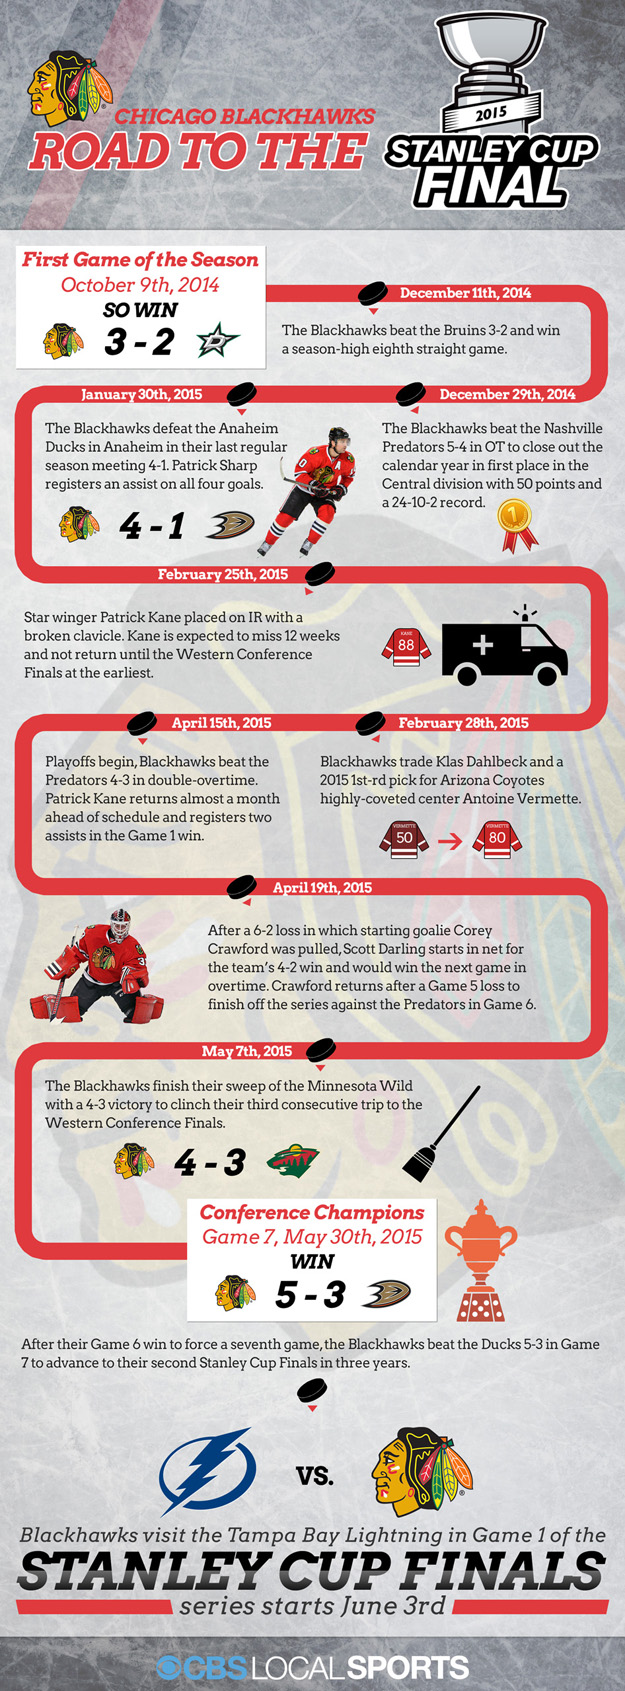 A look back at the path the Chicago Blackhawks took to get back to the Stanley Cup for the third time in six years.